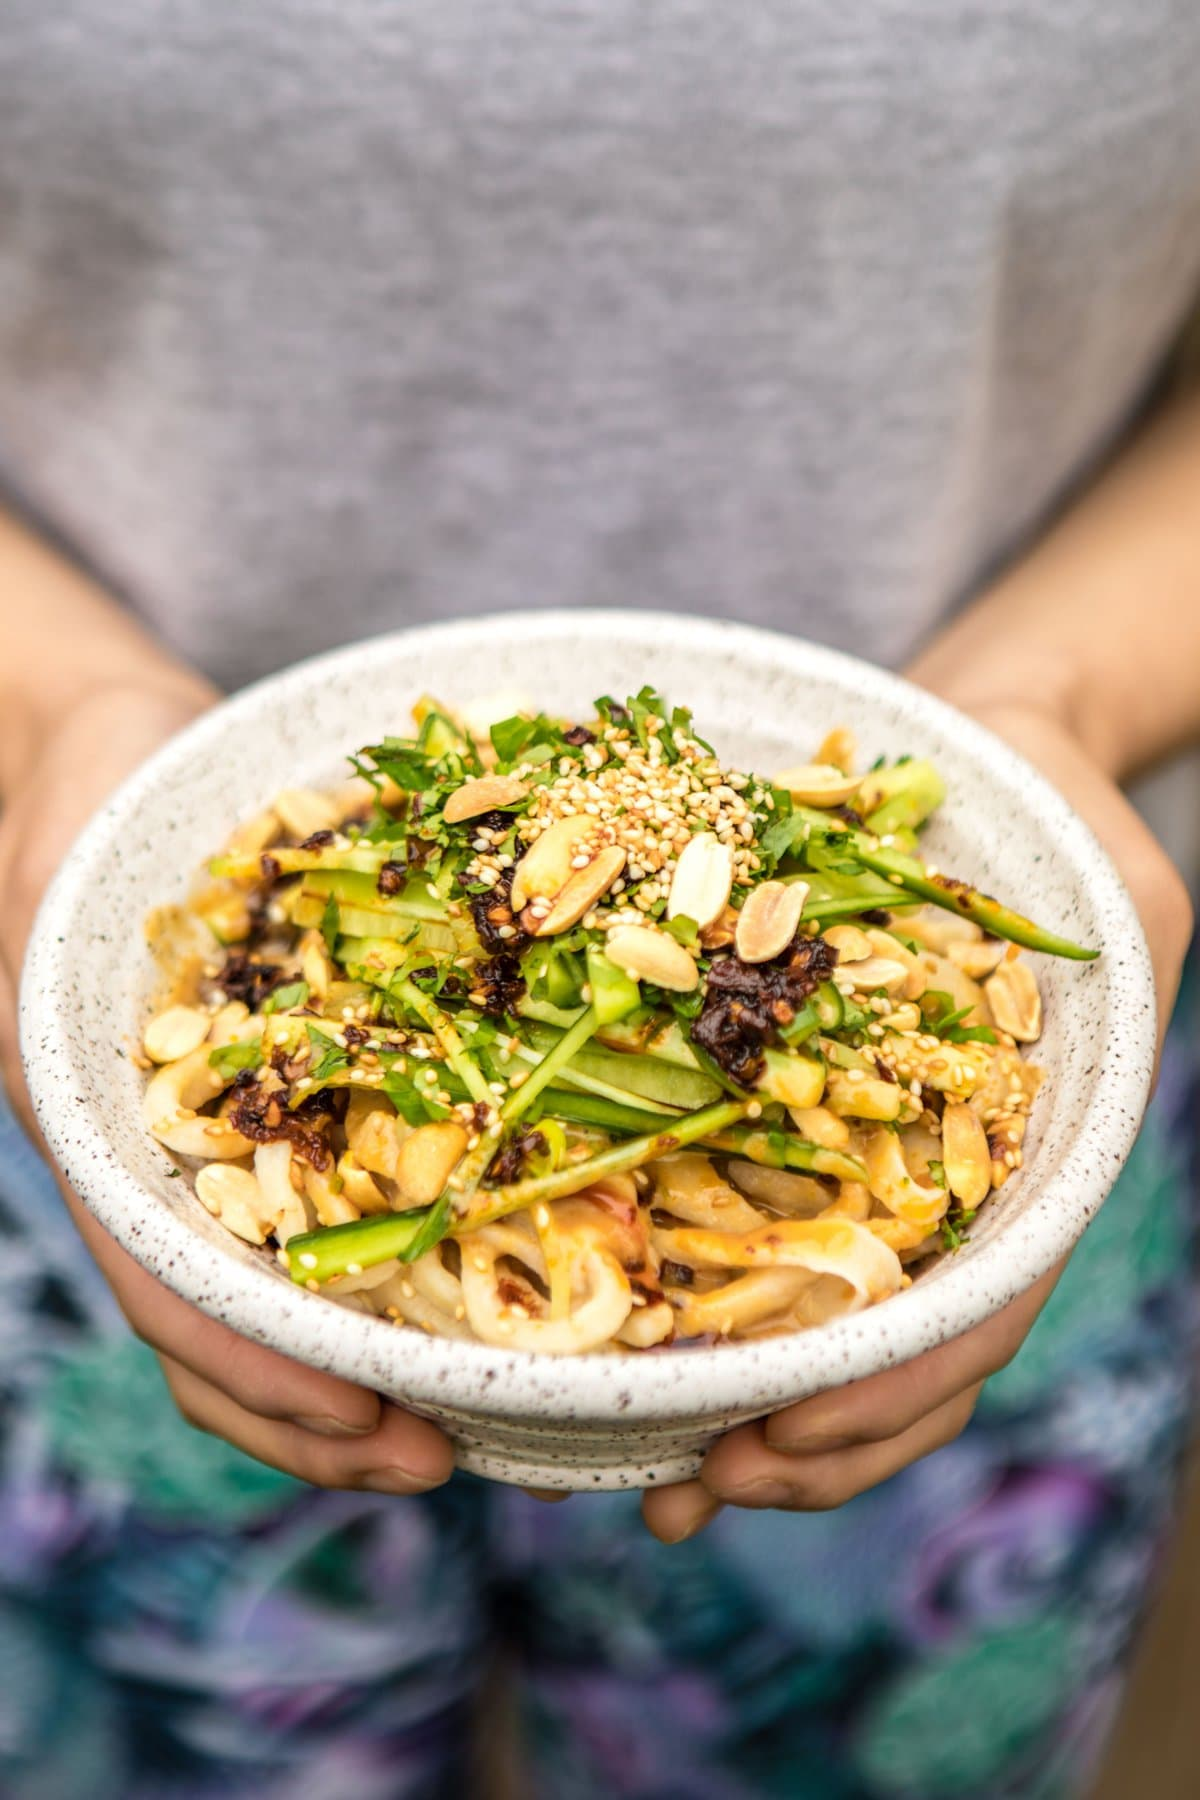 white speckled bowl of sesame noodles topped with green onion, peanuts, and chili oil